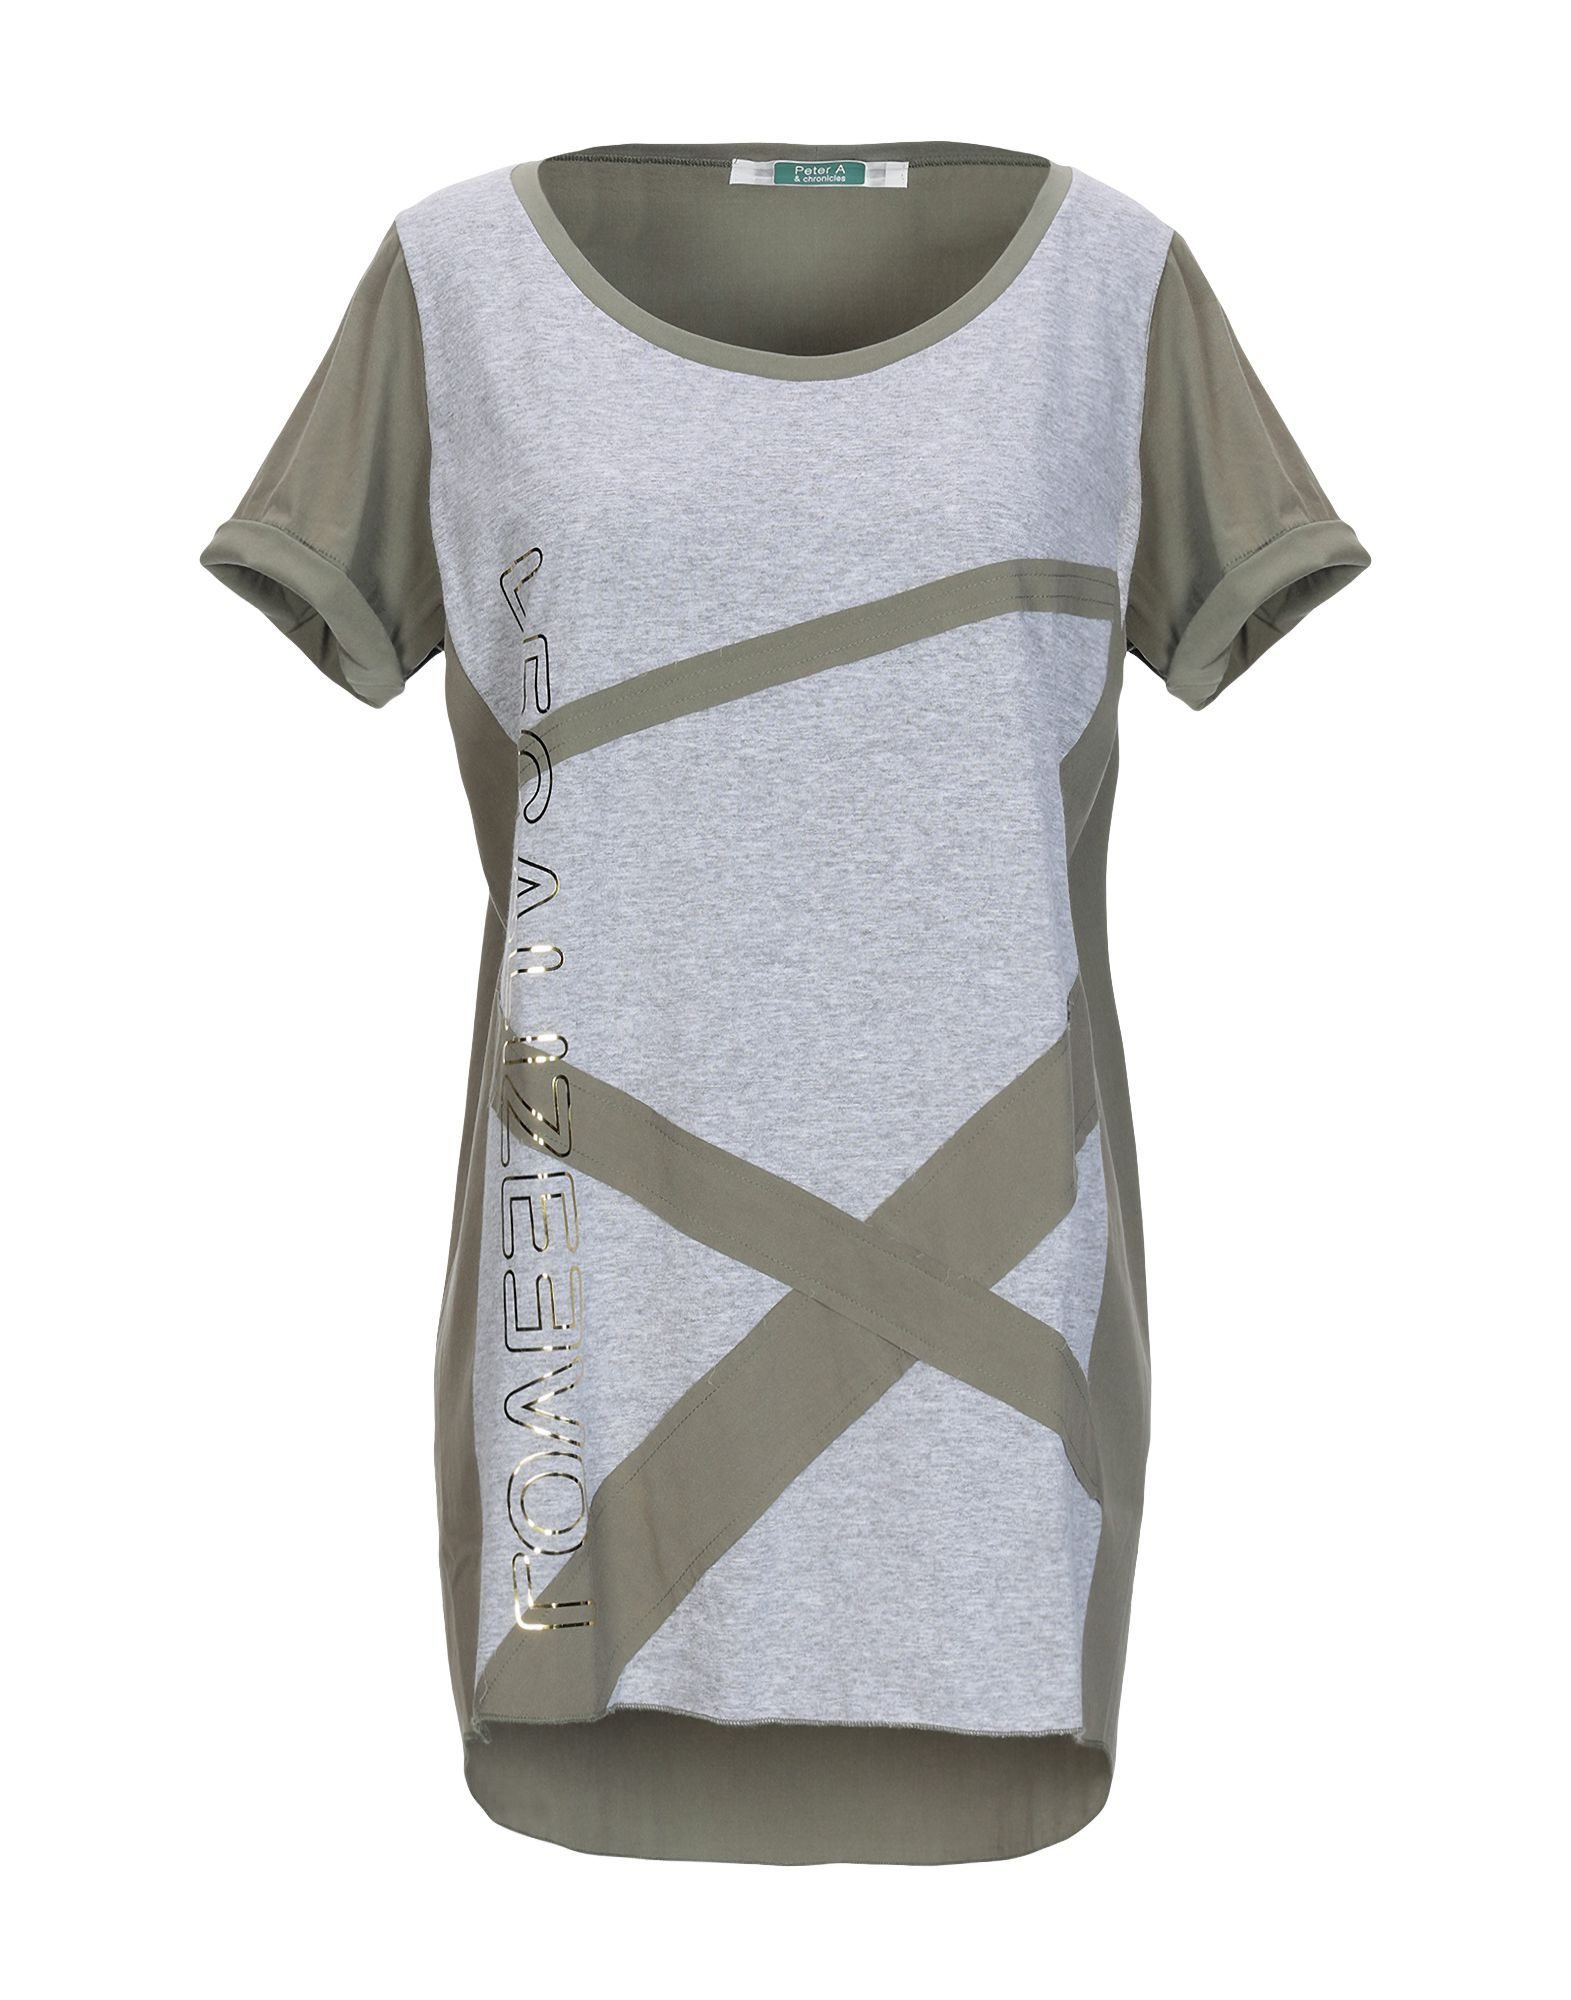 Topwear Peter A & Chronicles Military Green Women's Cotton